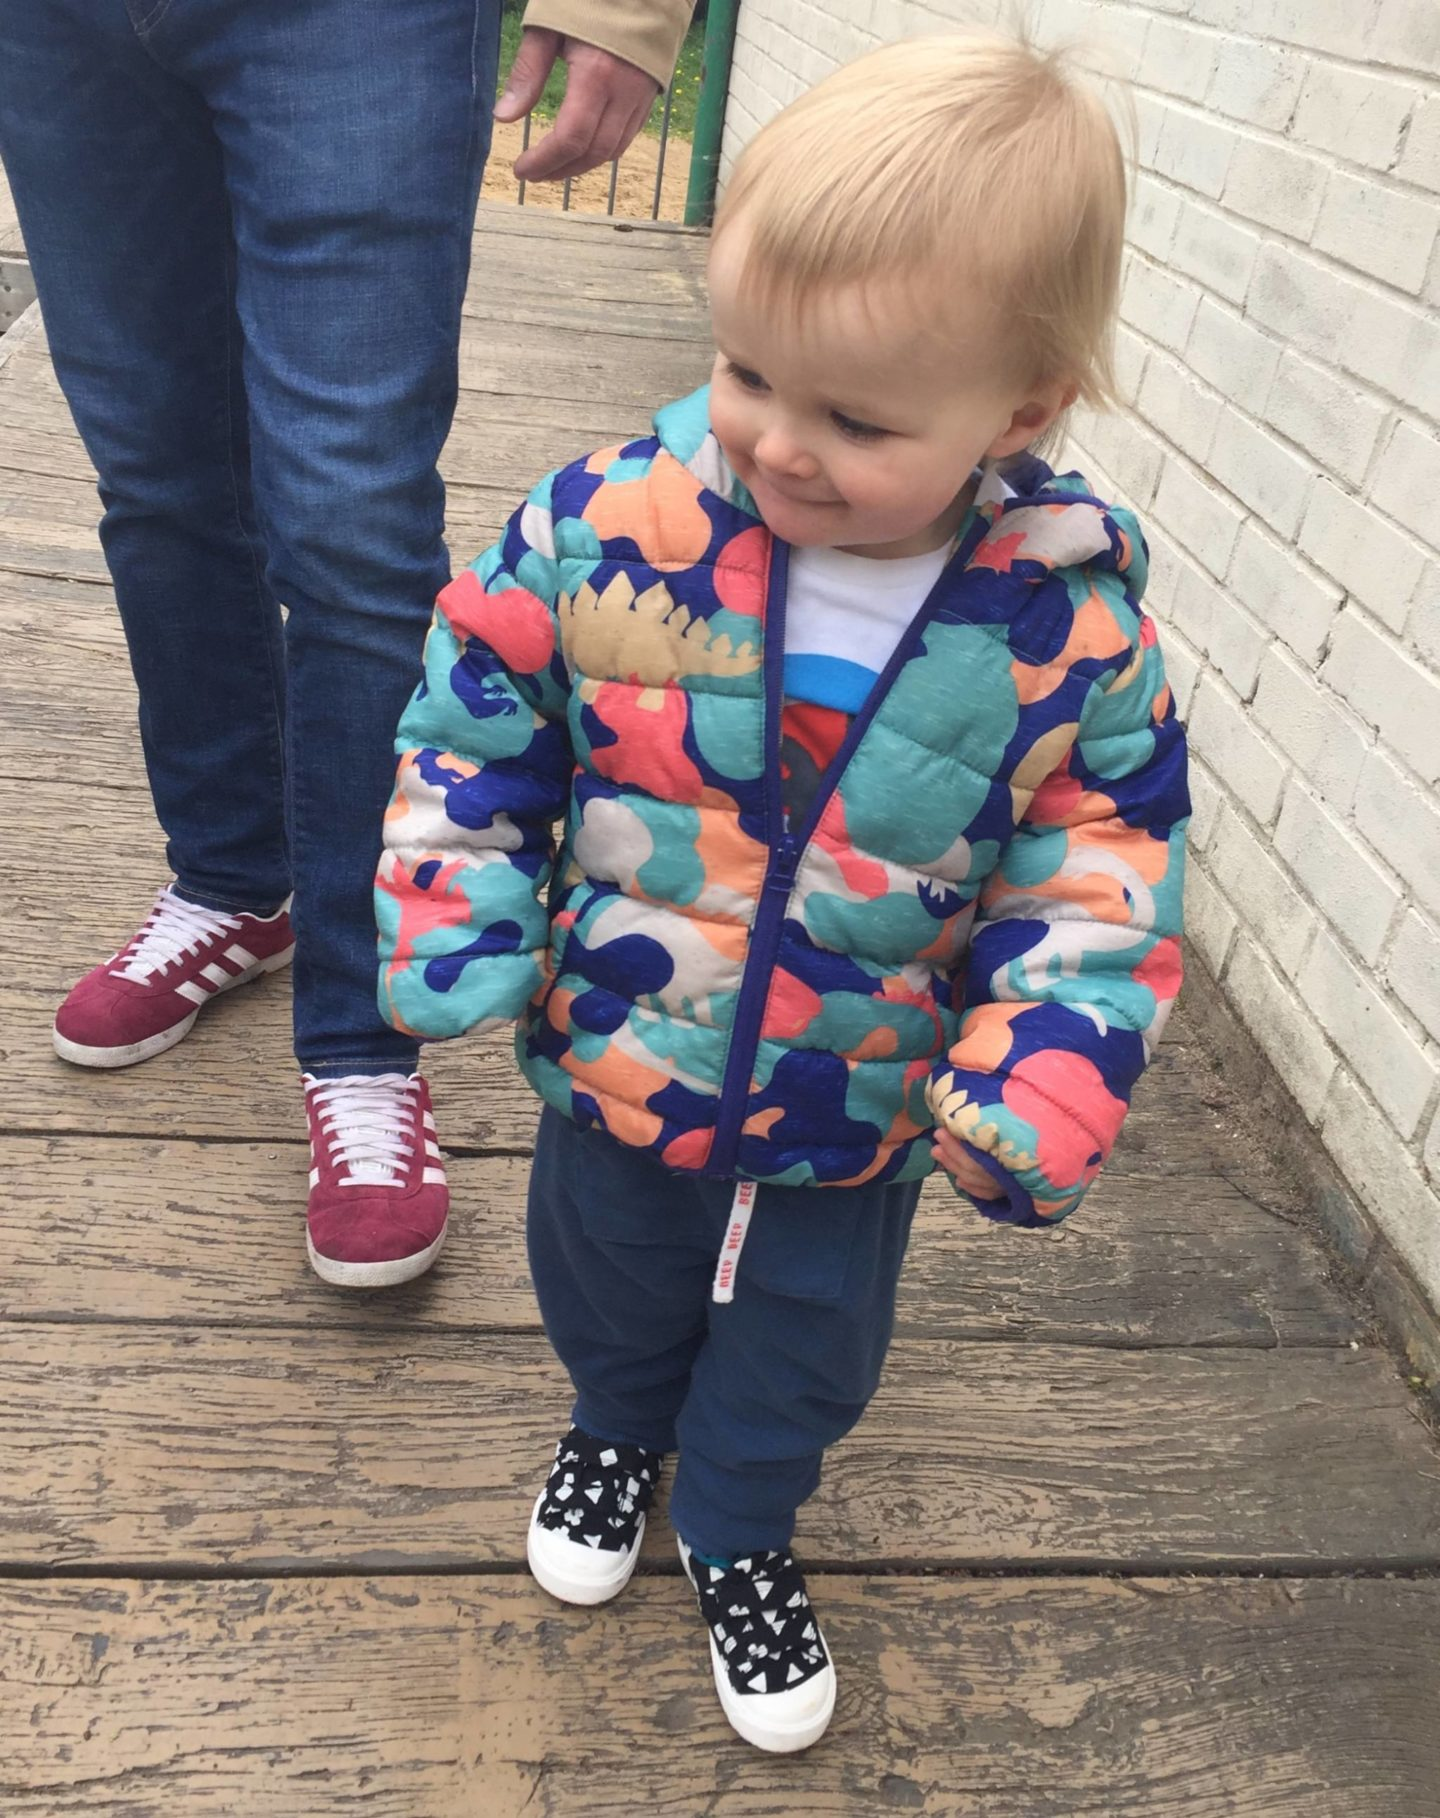 toddler walking